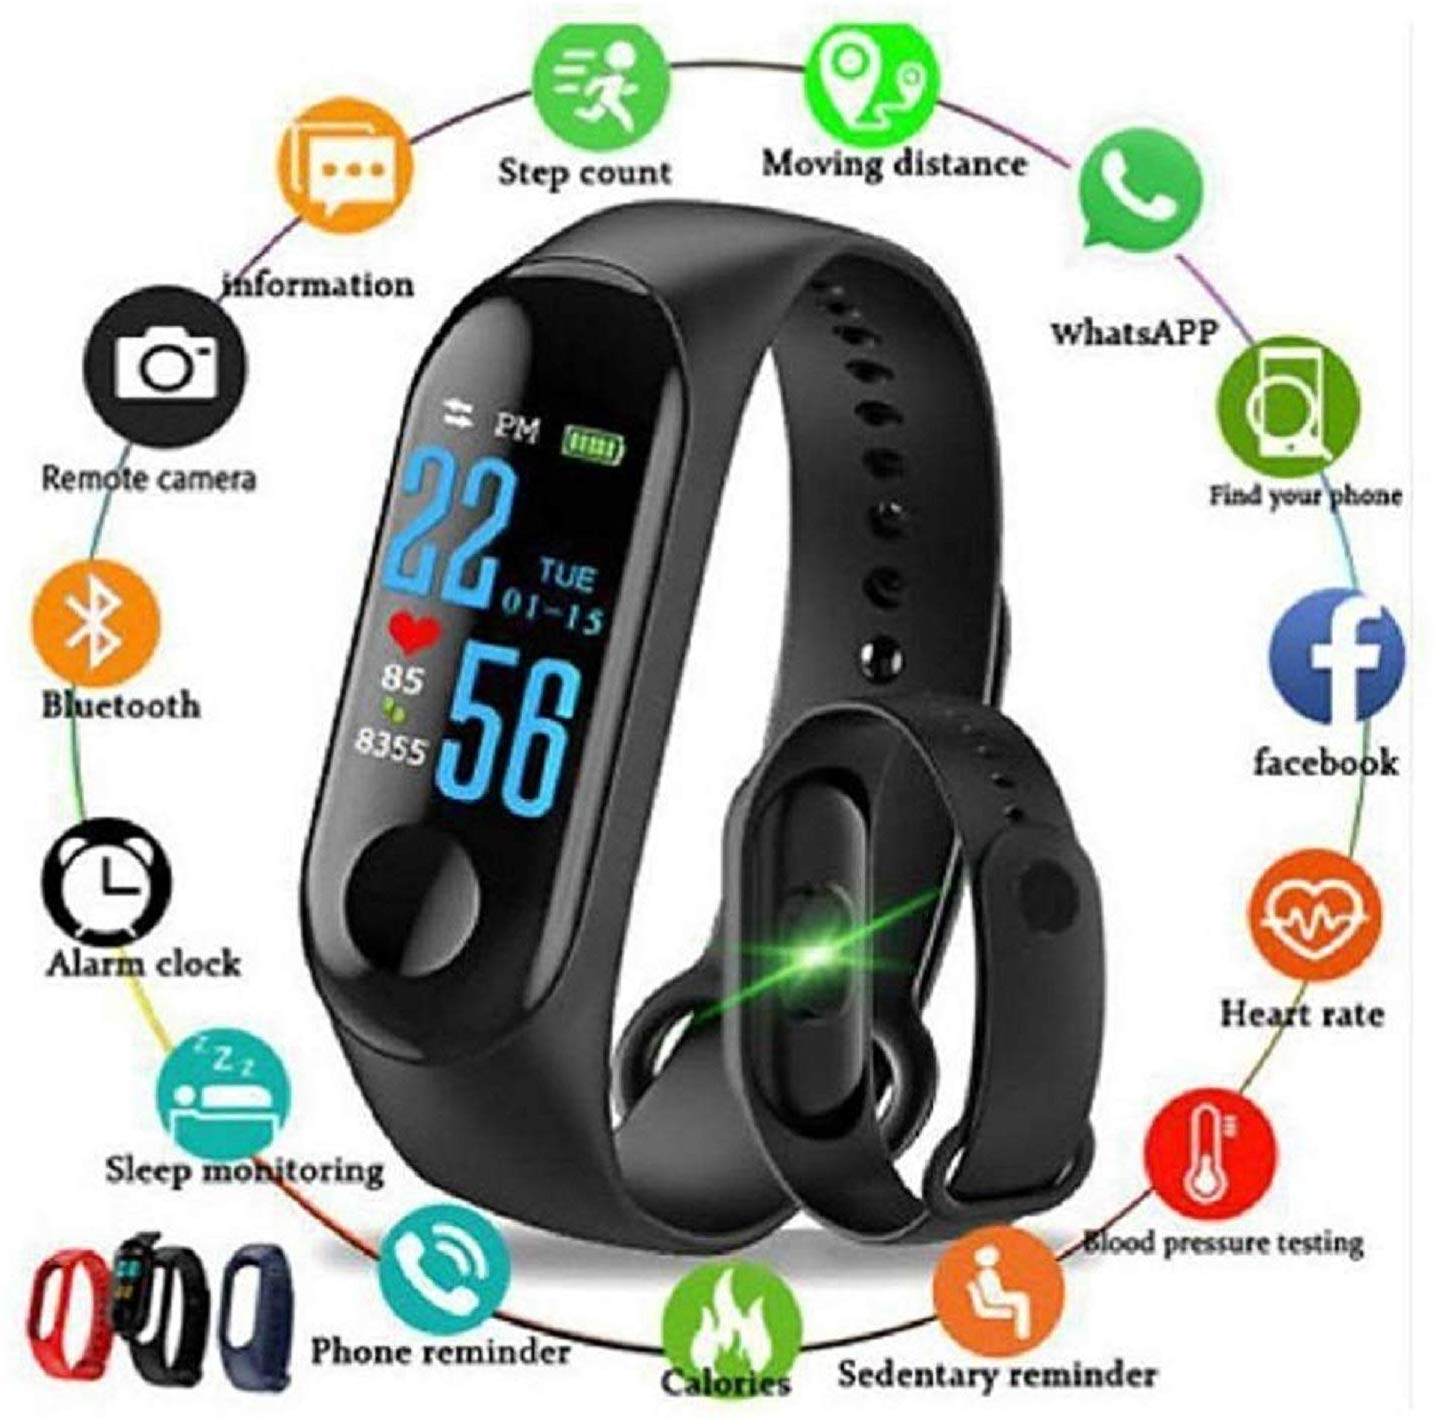 SHOPTOSHOP Smart Band Fitness Tracker Watch Heart Rate with Activity Tracker Waterproof Body Functions Like Steps Counter, Calorie Counter, Blood Pressure,